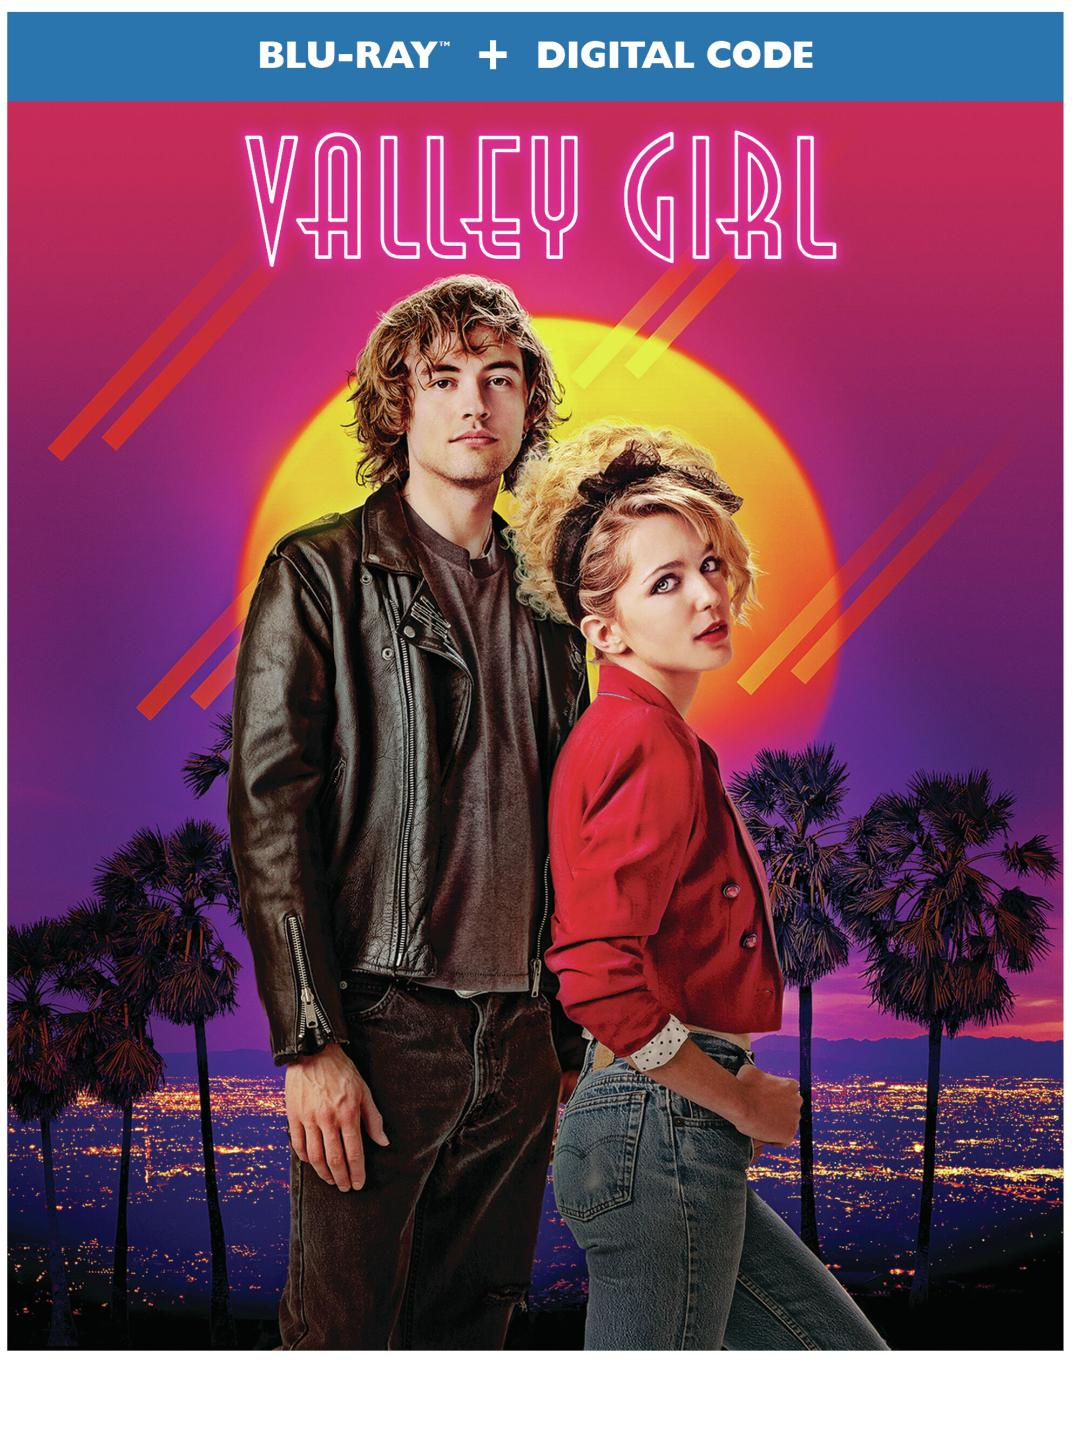 Valley Girl Blu-ray Review